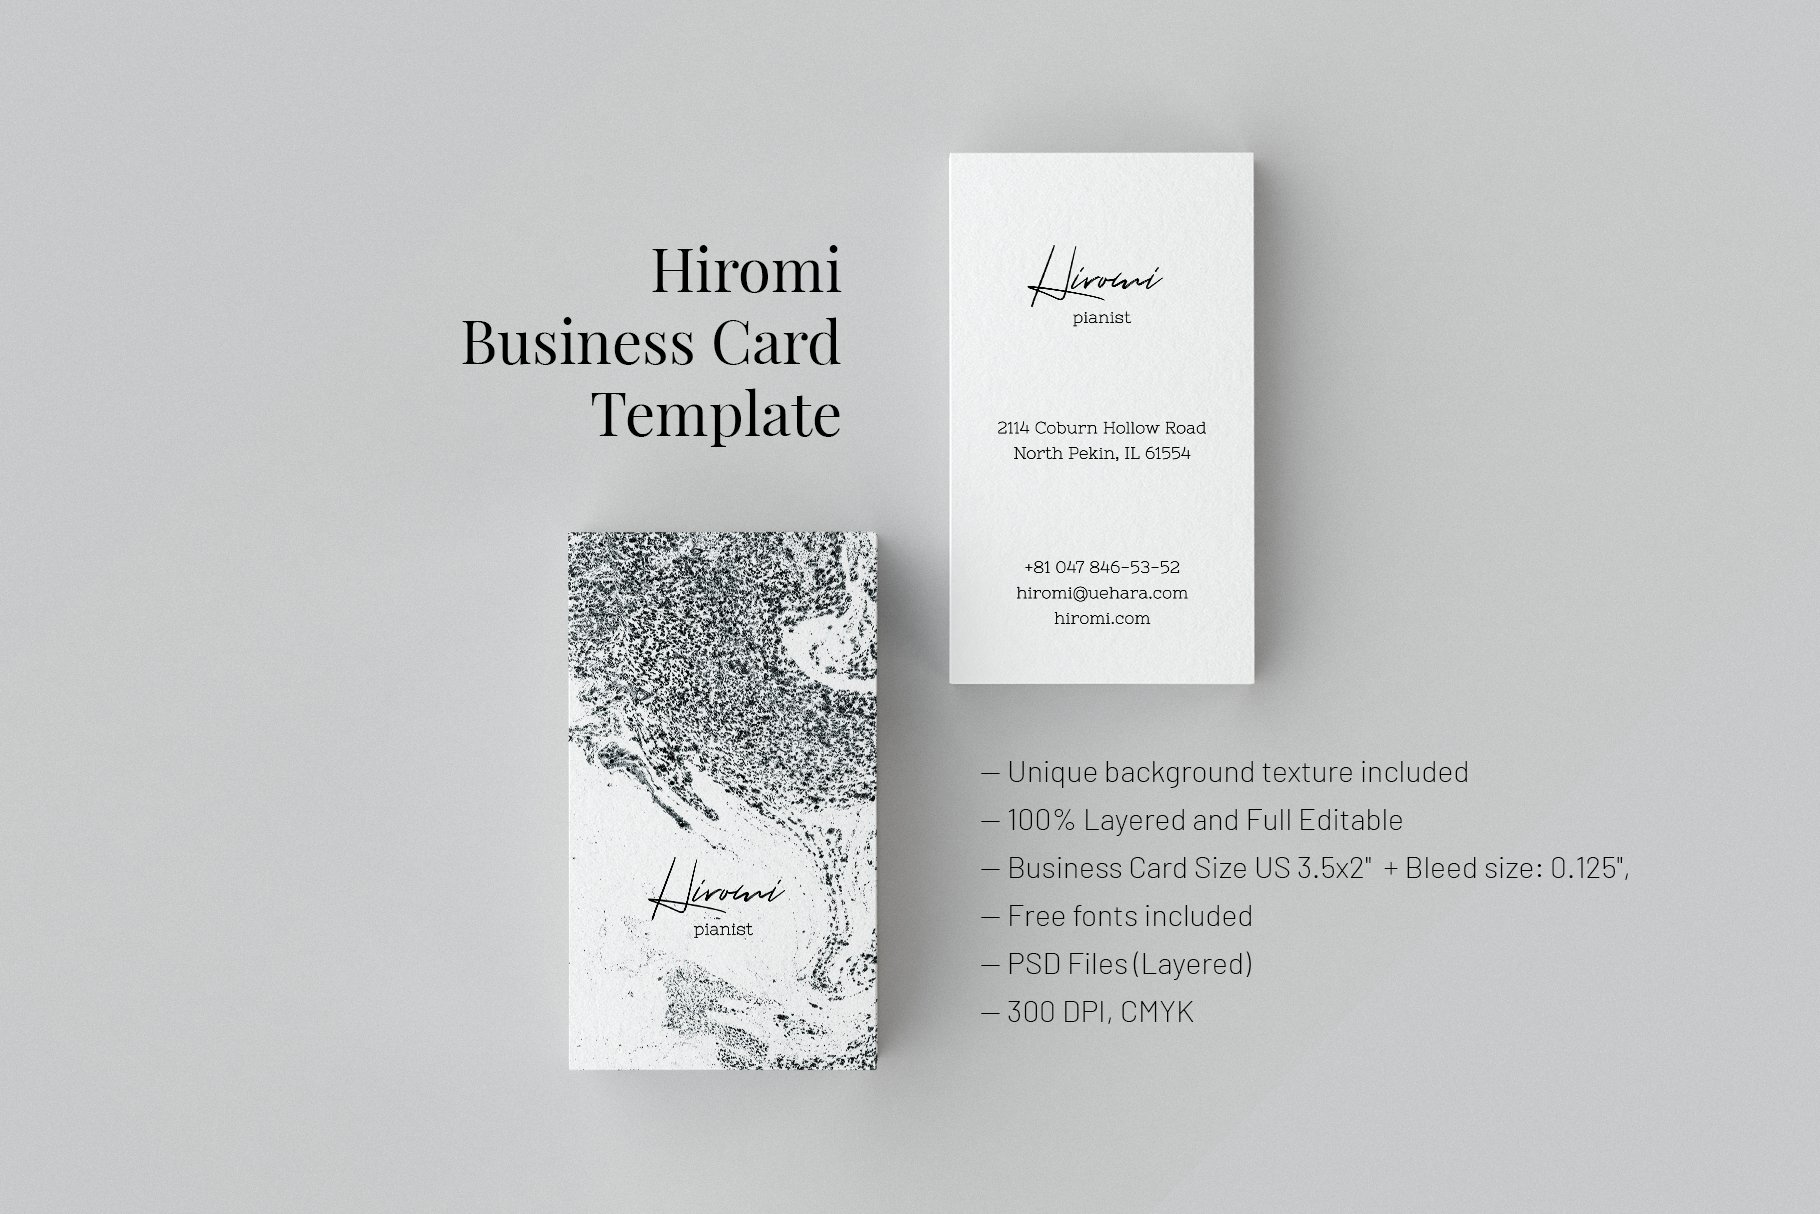 Hiromi business card template business card templates creative business card template business card templates creative market accmission Choice Image